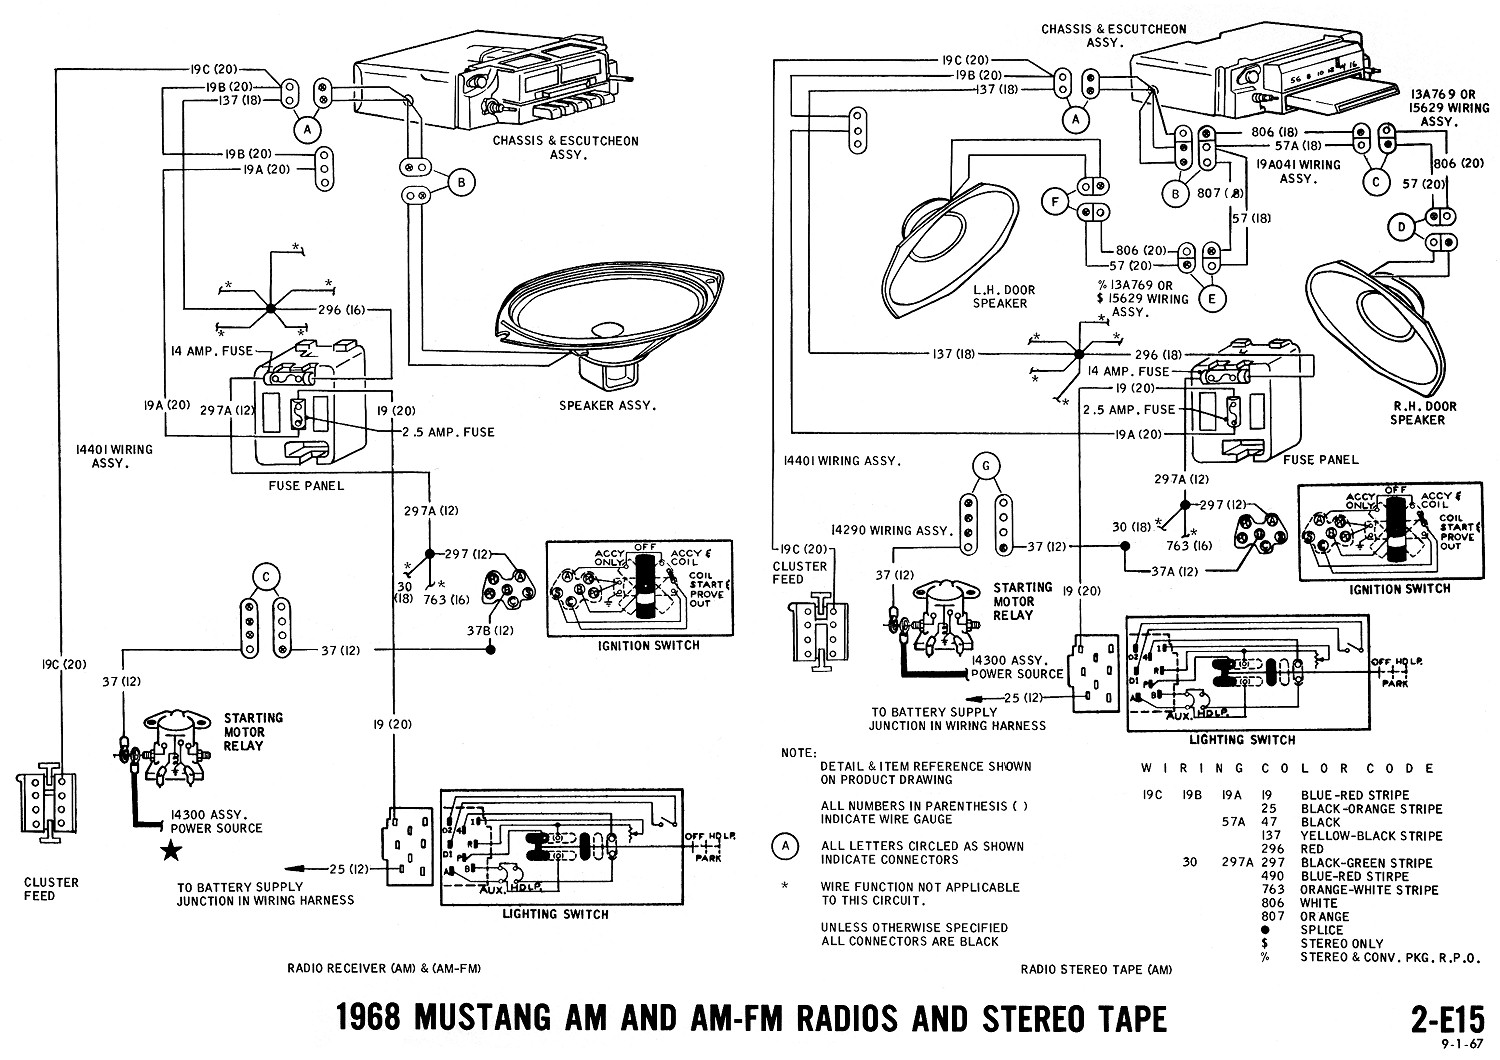 1968 Gm Radio Wiring Diagram Libraries Delco Wire Chevelle Simple Diagram1968 Database Library